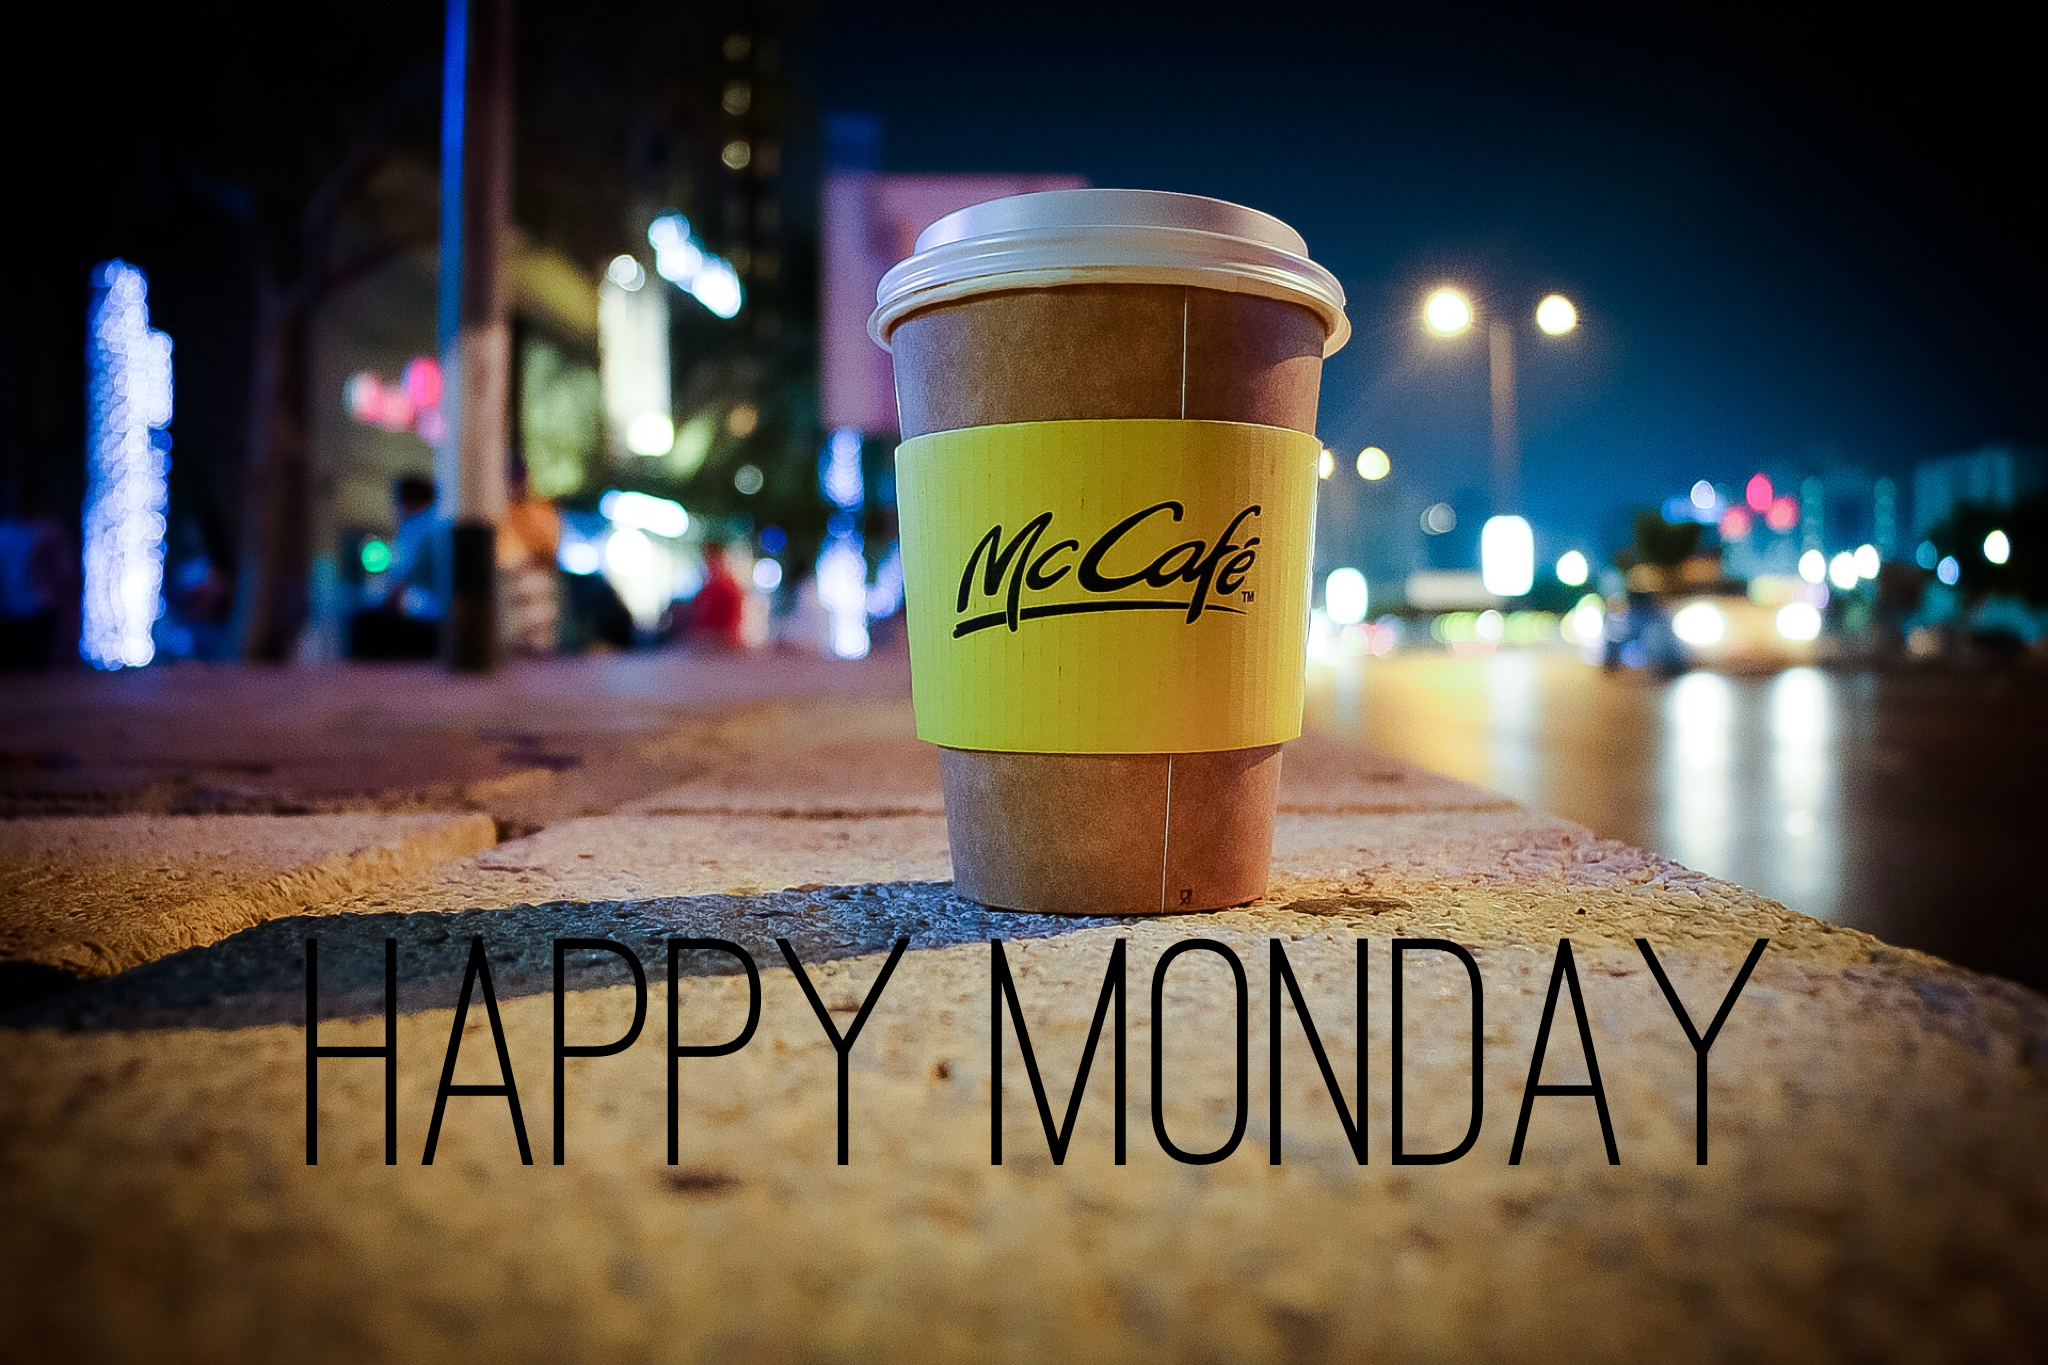 Happy Monday Cup of Coffee